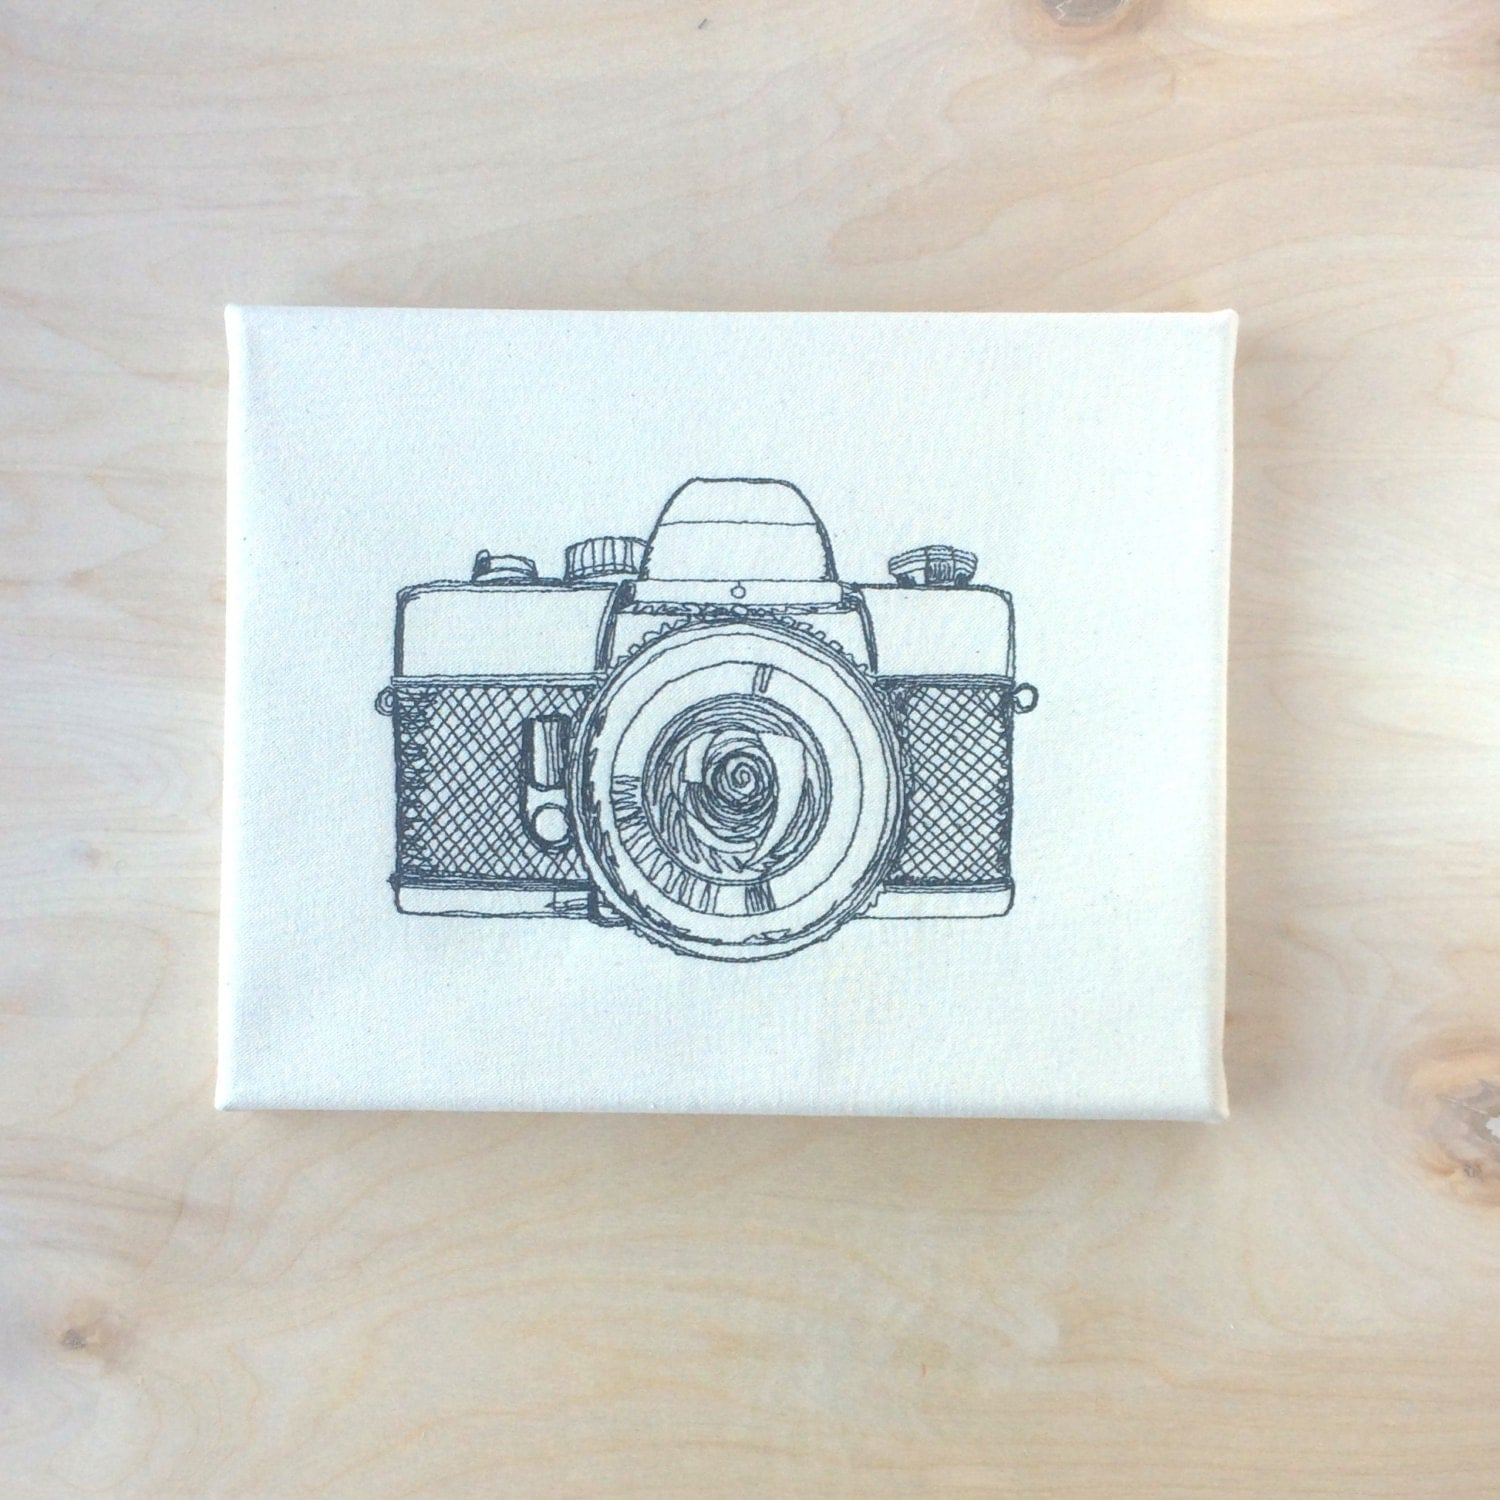 Embroidered Canvas Wall Art Camera Sketch